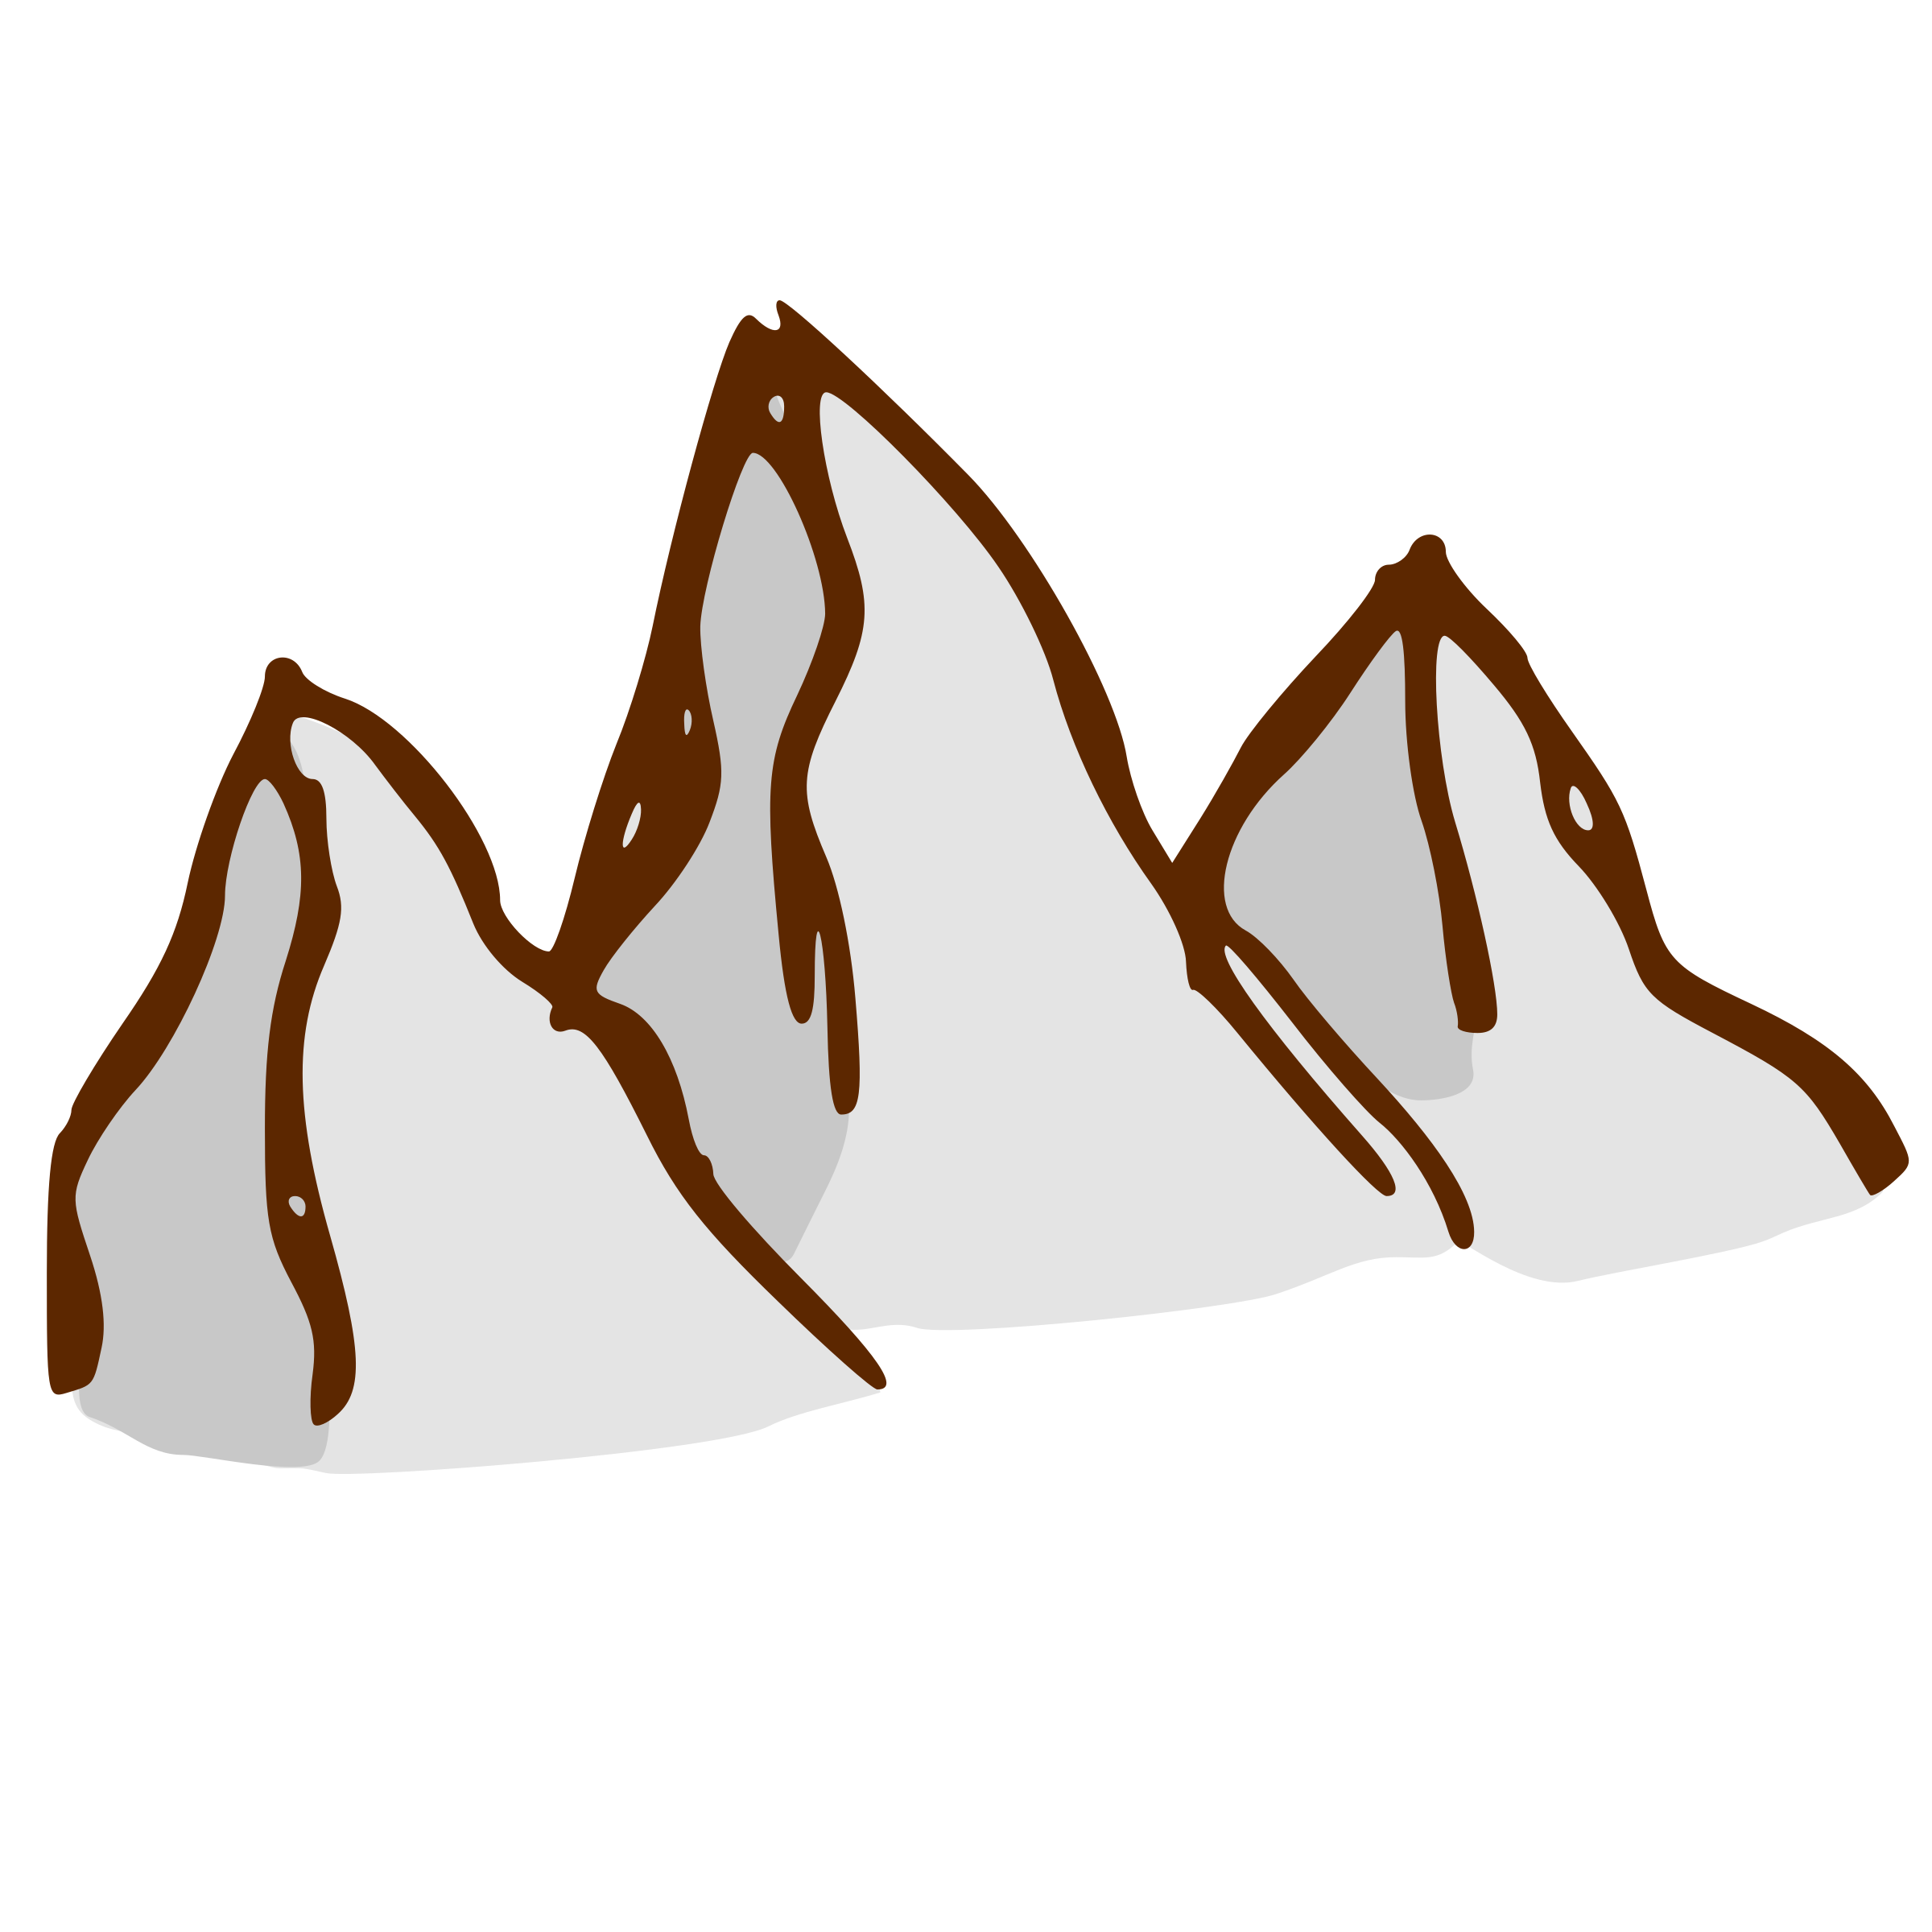 RPG map symbols: mountains by nicubunu